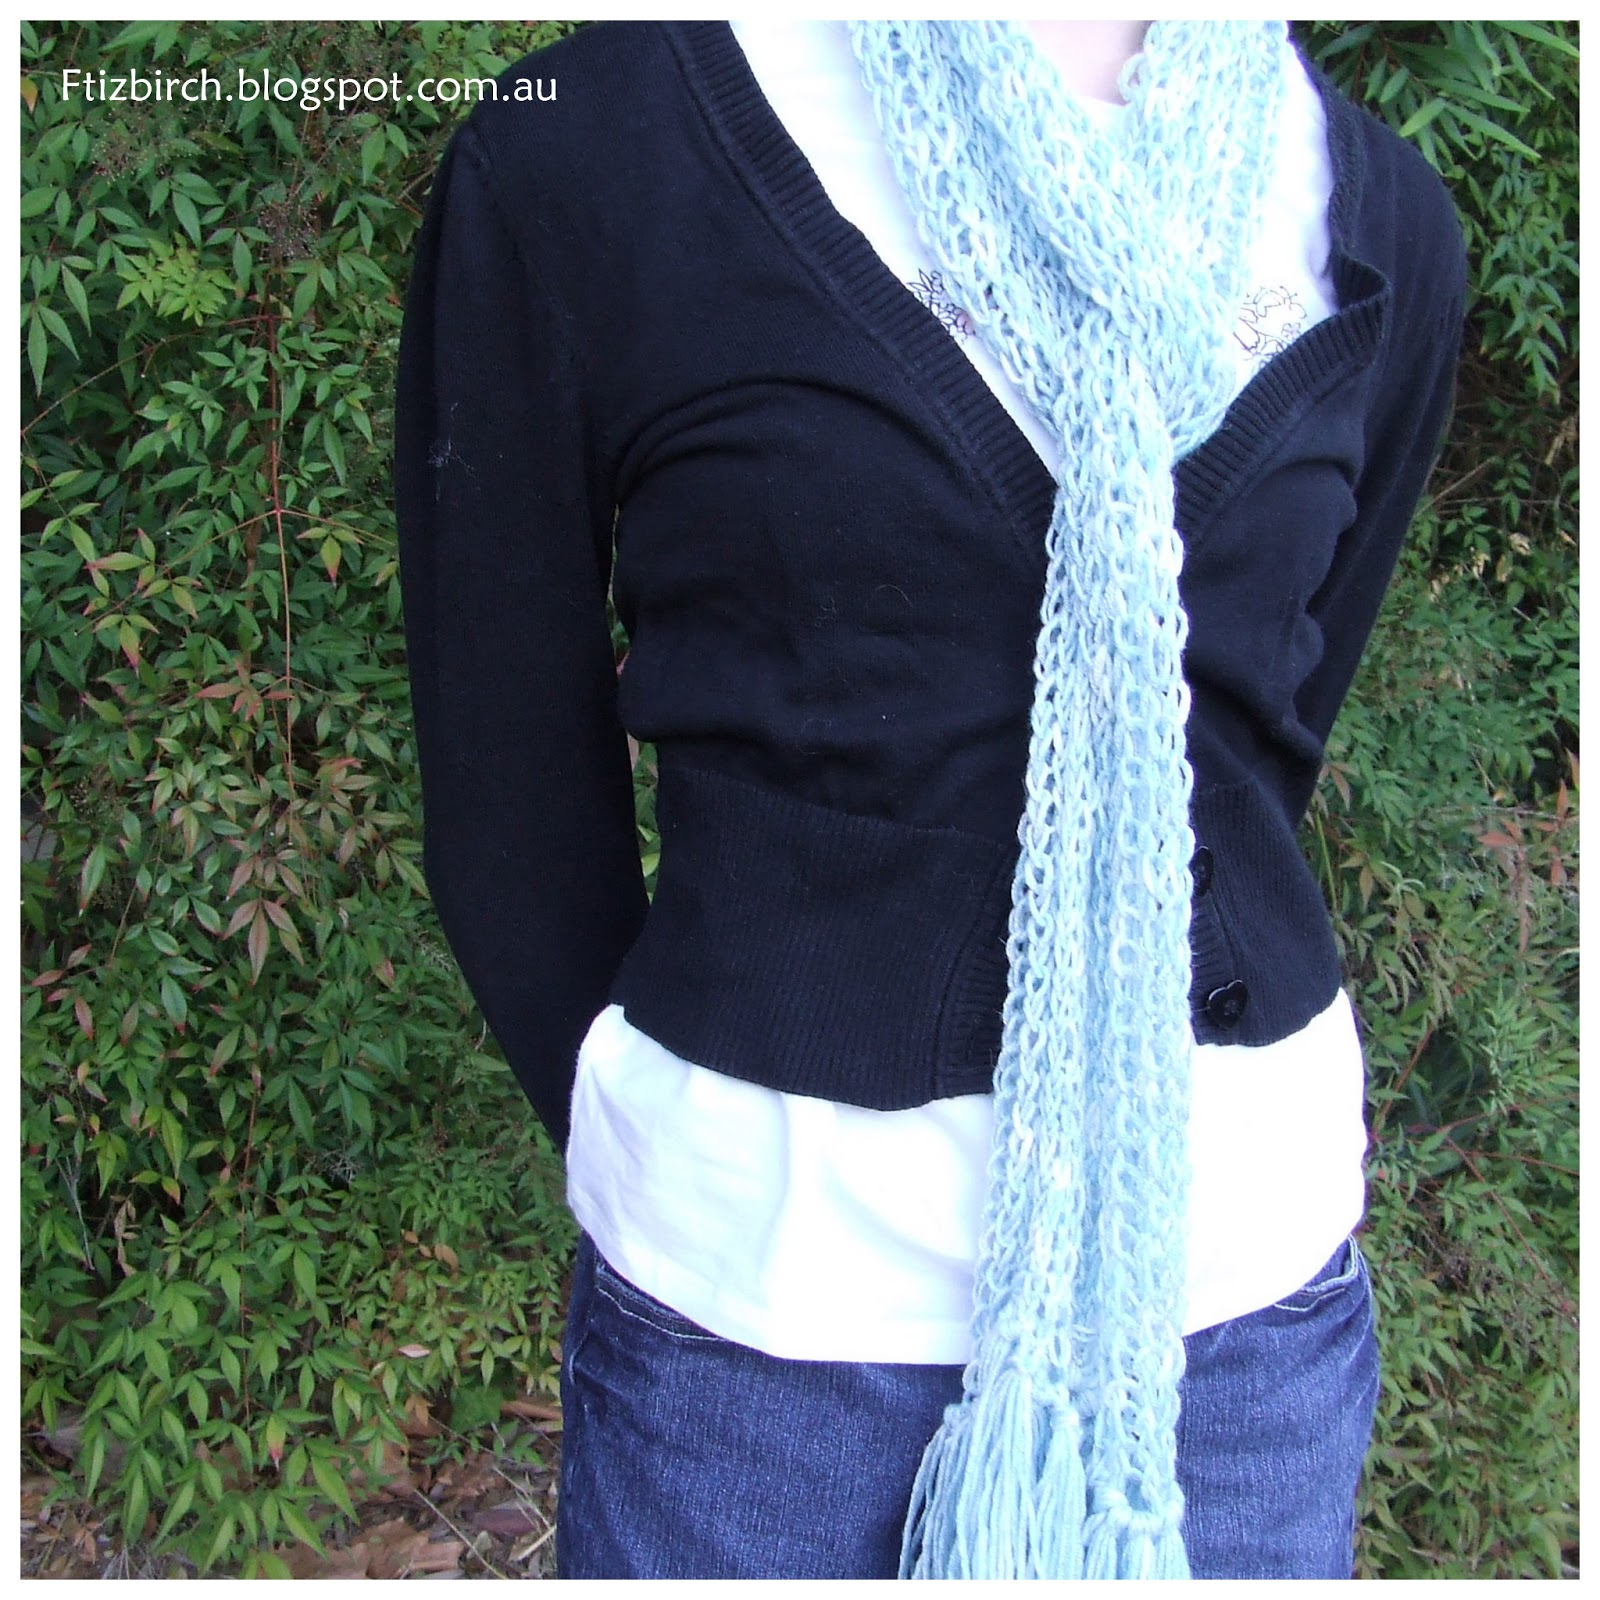 Knitting A Scarf Quickly : Fitzbirch crafts quick loom knit scarf